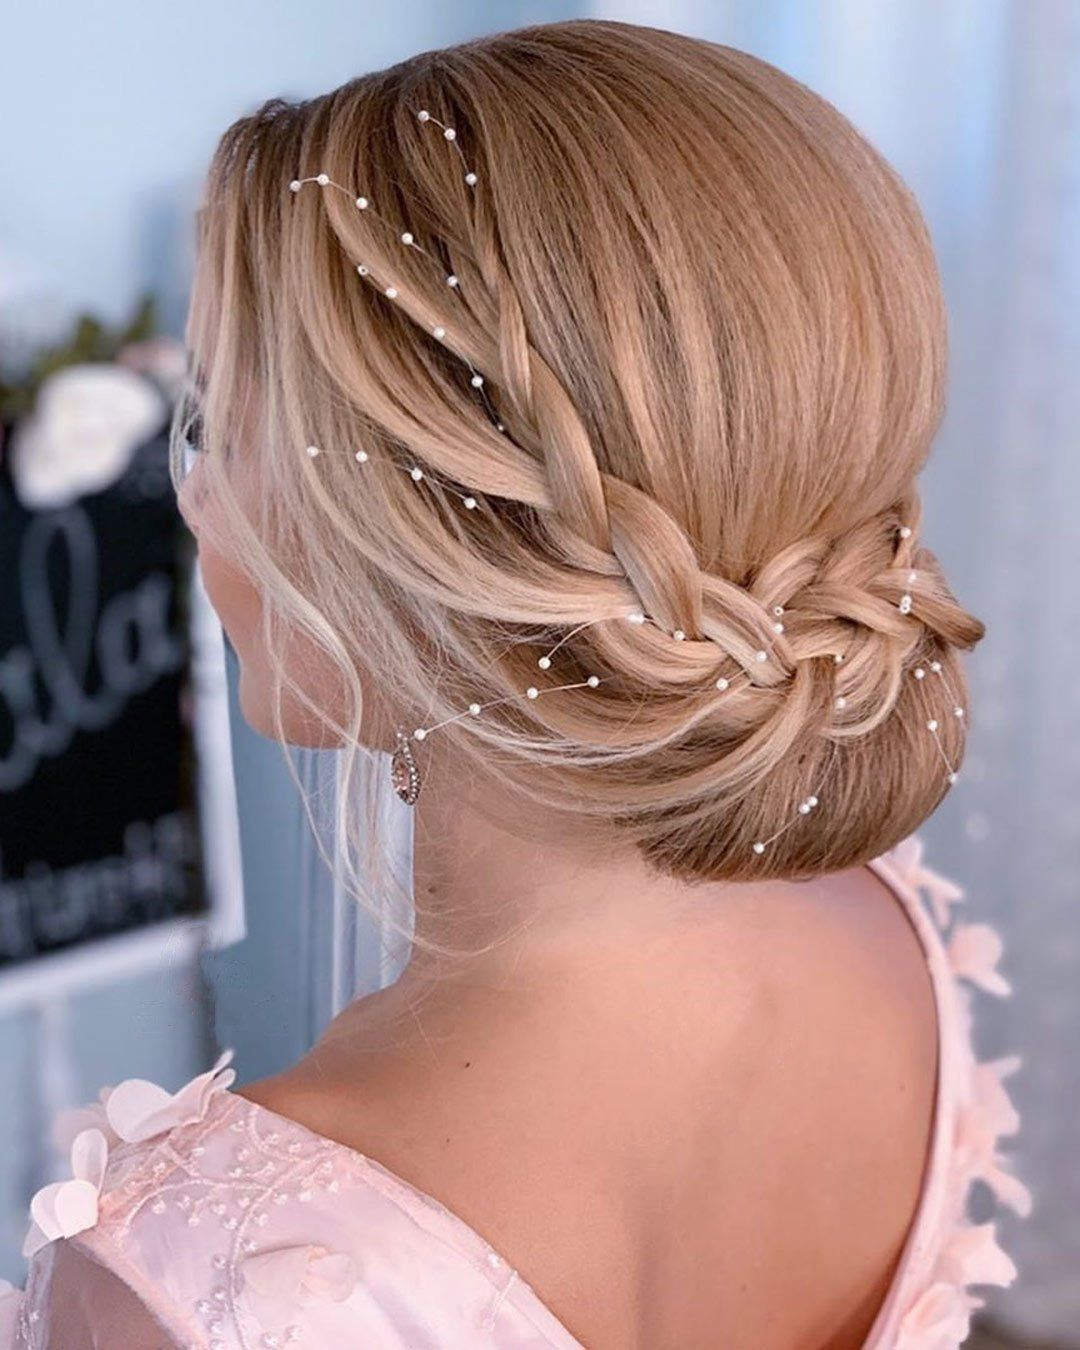 Best Wedding Hairstyles For Every Bride Style 18   Bridal ...